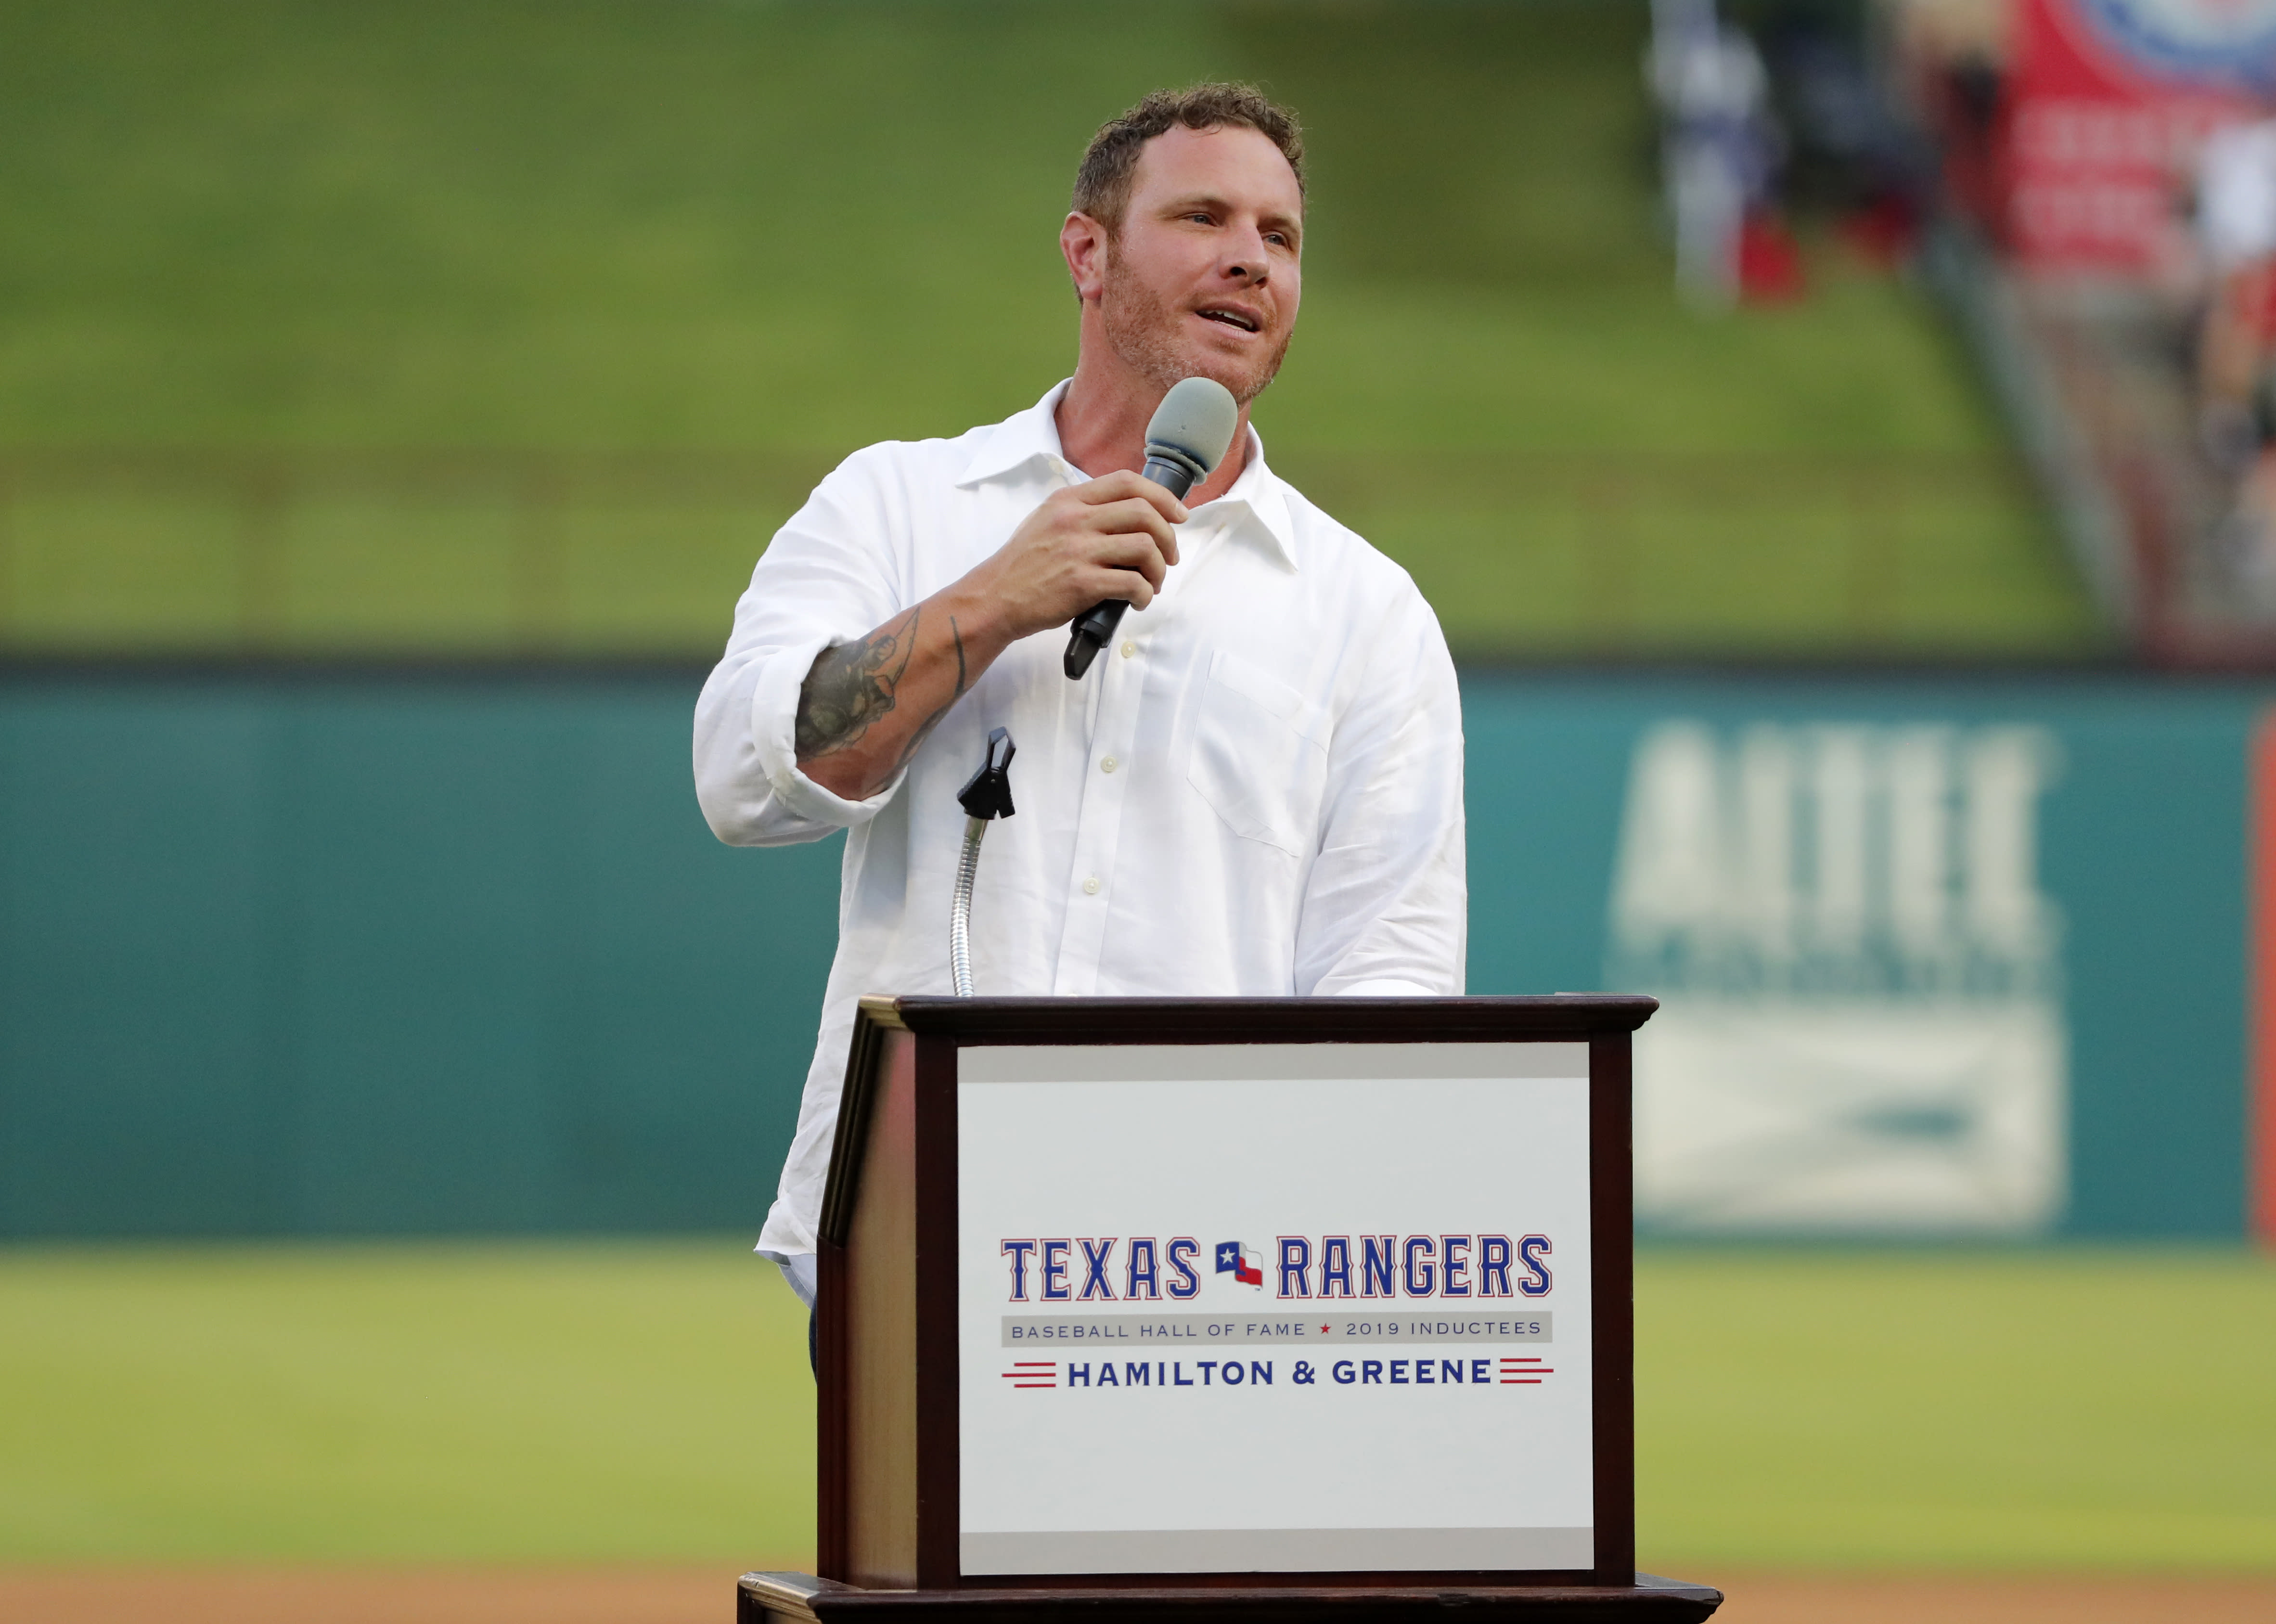 Former Texas Rangers player Josh Hamilton makes comments during a ceremony where the club inducted him into its Hall of Fame, before the team's baseball game against the Minnesota Twins in Arlington, Texas, Saturday, Aug. 17, 2019. (AP Photo/Tony Gutierrez)